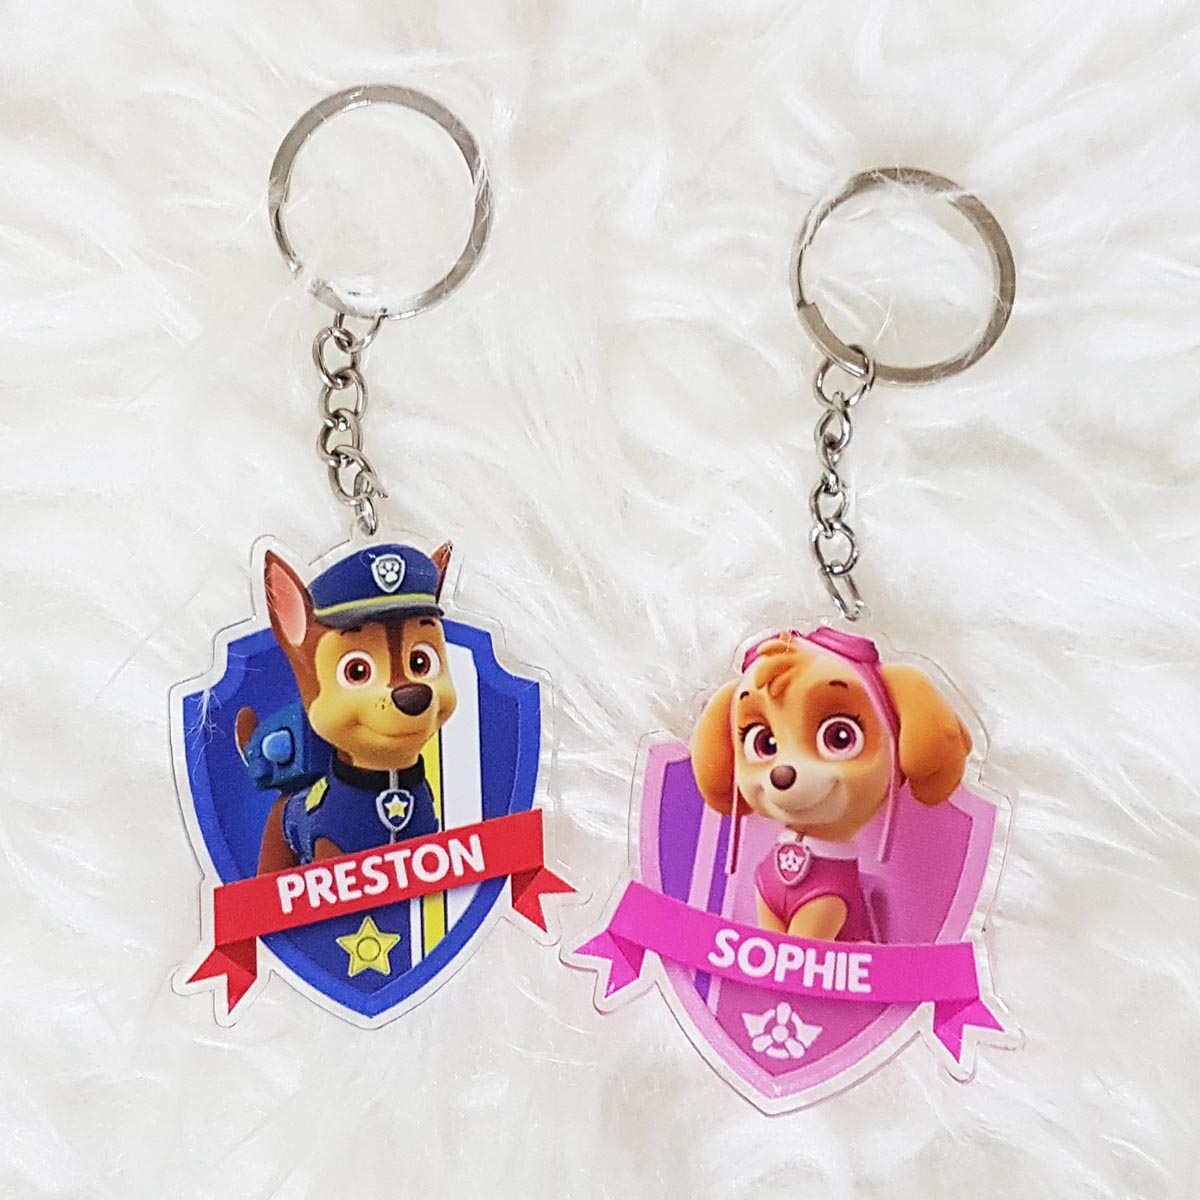 Clear Acrylic Keychain Personalised With Name - Party Favour Singapore